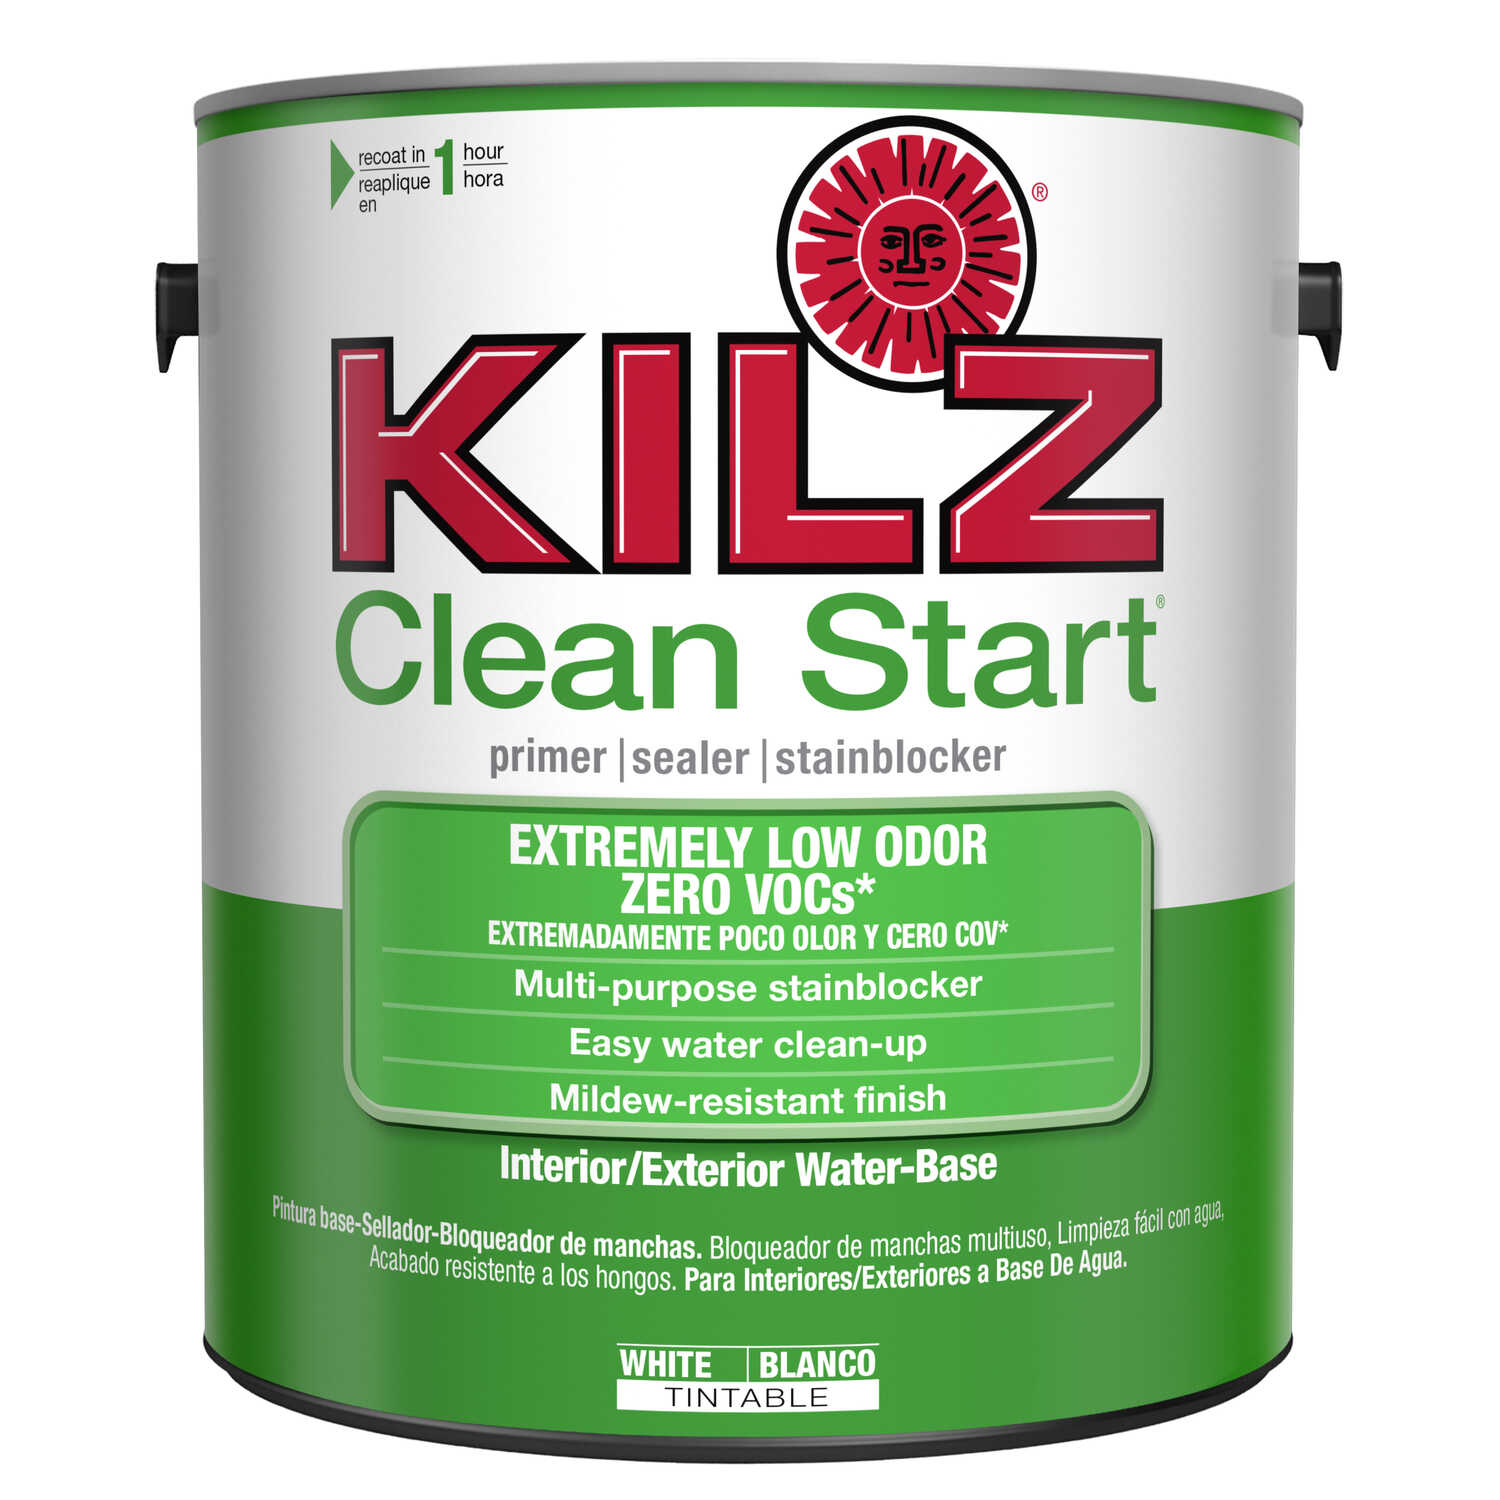 Kilz  Clean Start  Mildew-Resistant  White  Water-Based  Primer and Sealer  For Woodwork, Drywall, P